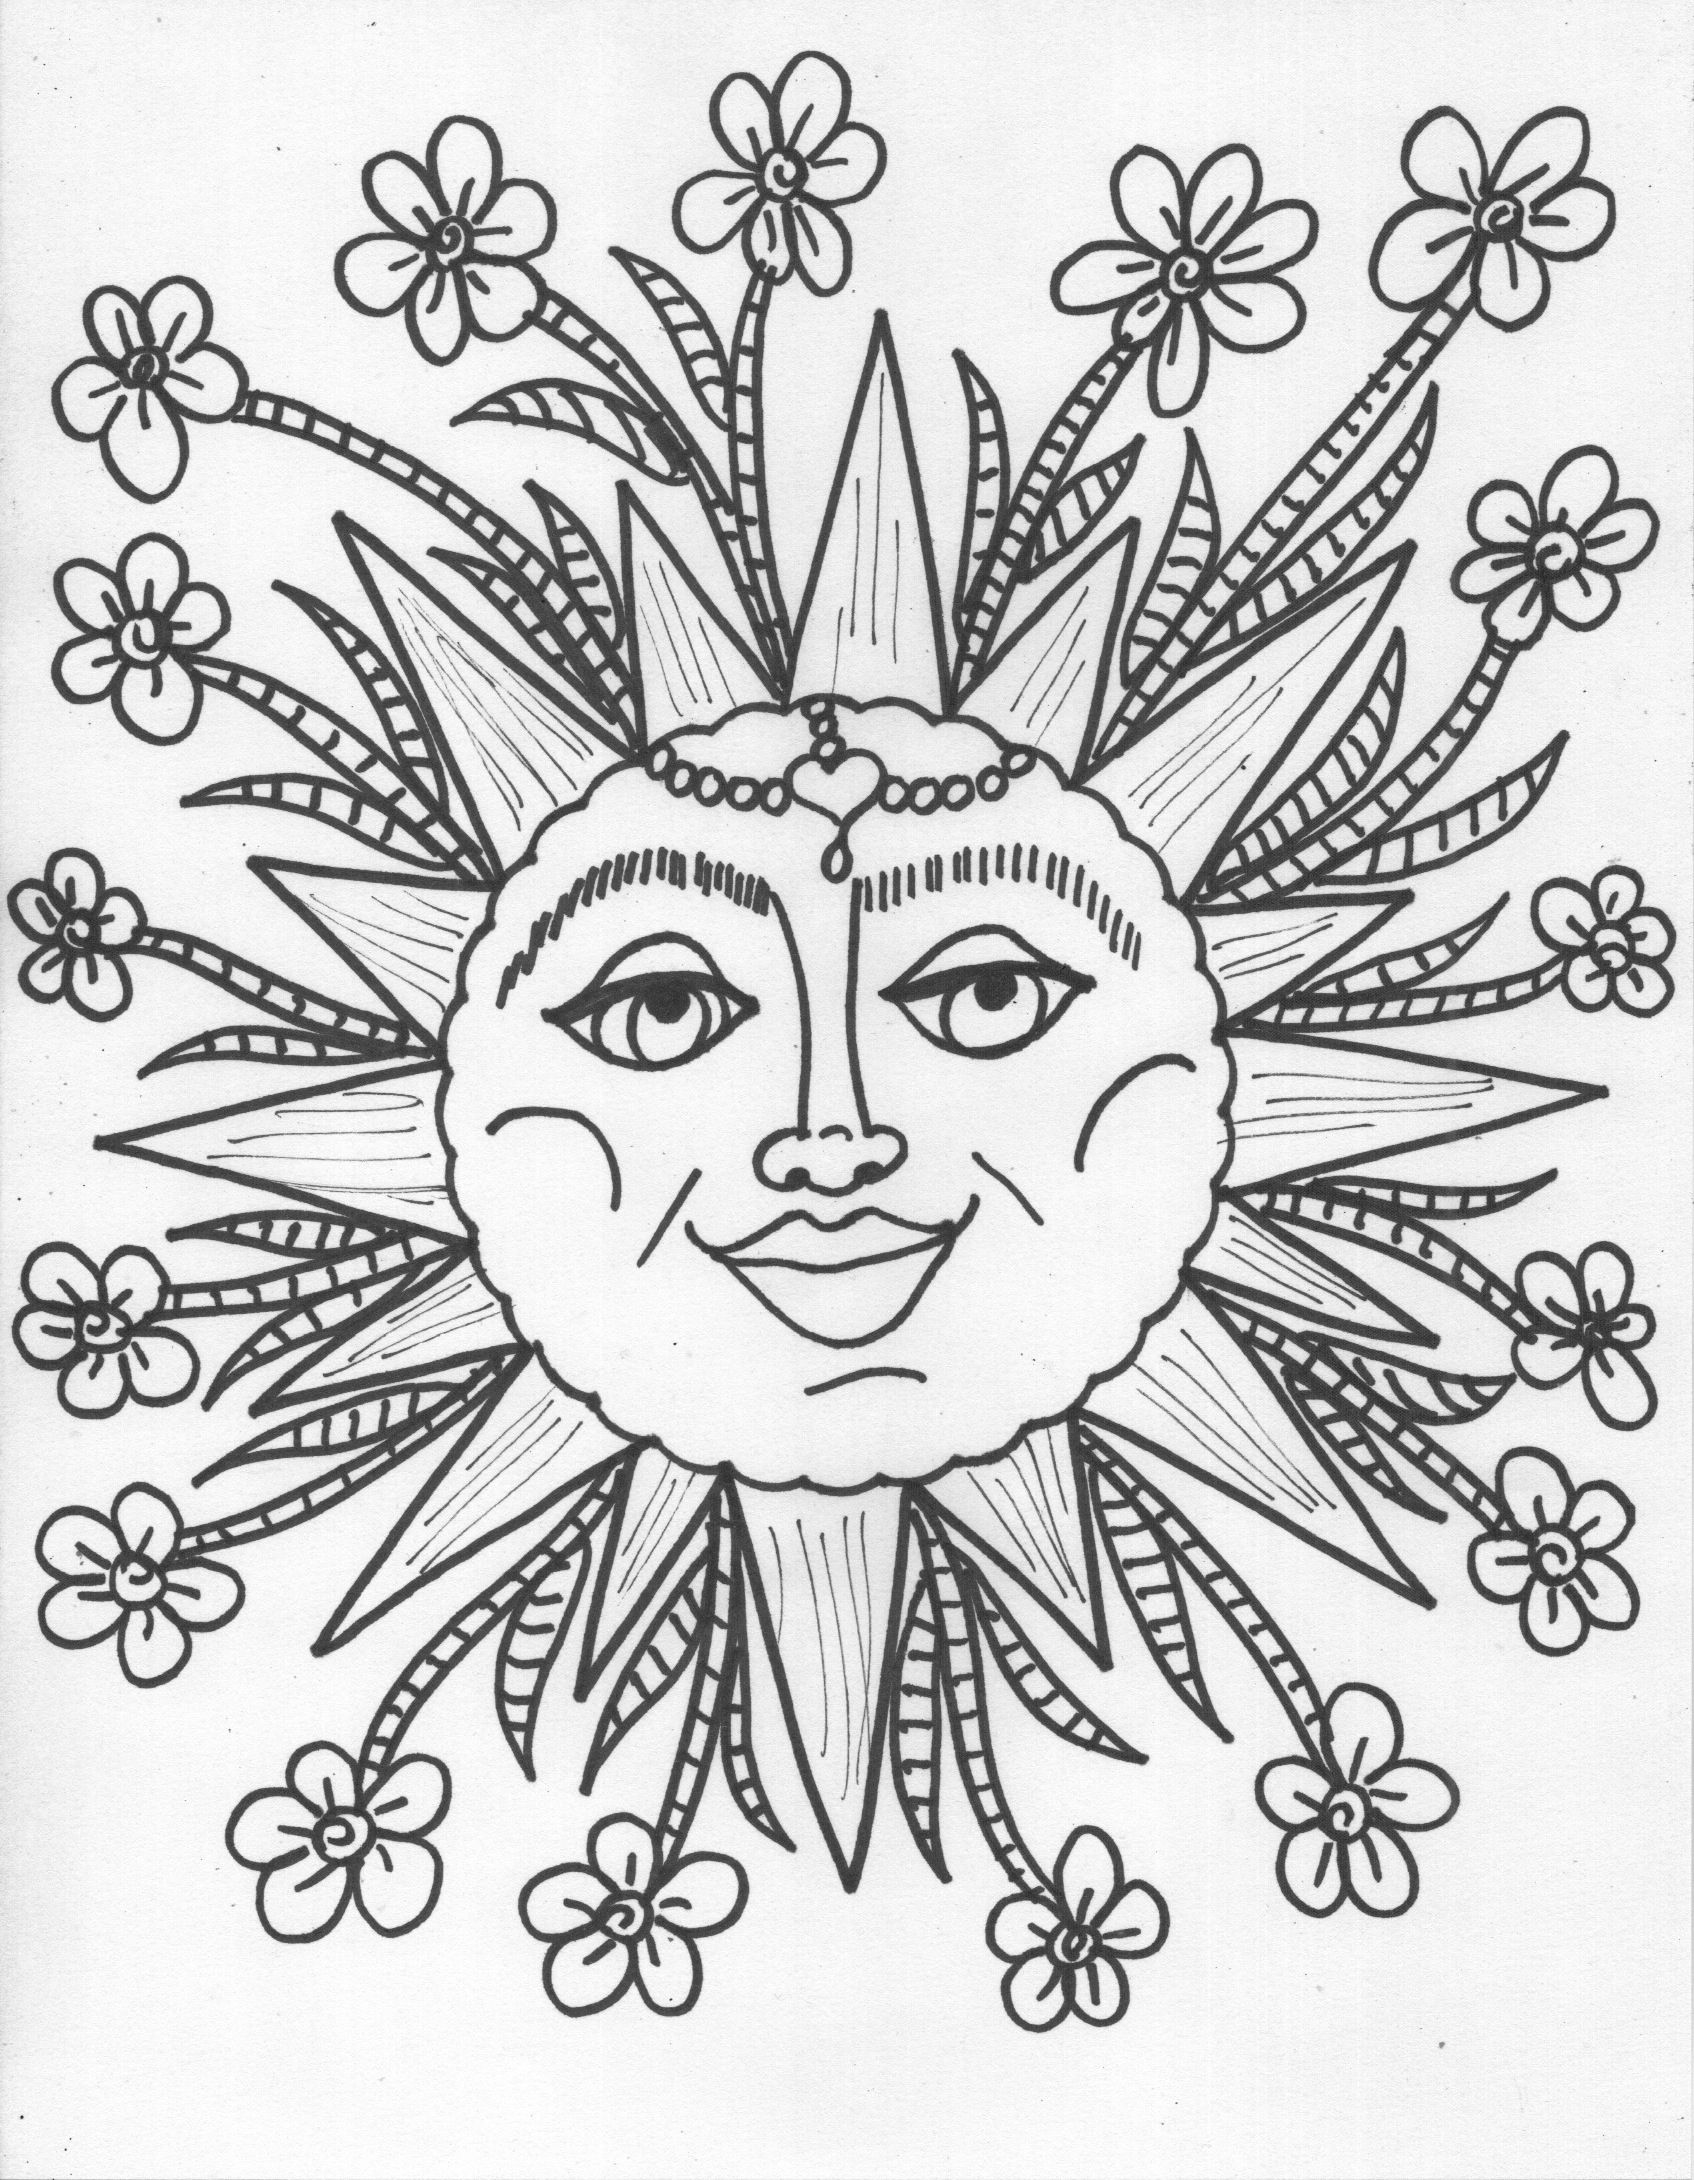 coloring book pagesdesign your own coloring book - Sun And Moon Coloring Pages